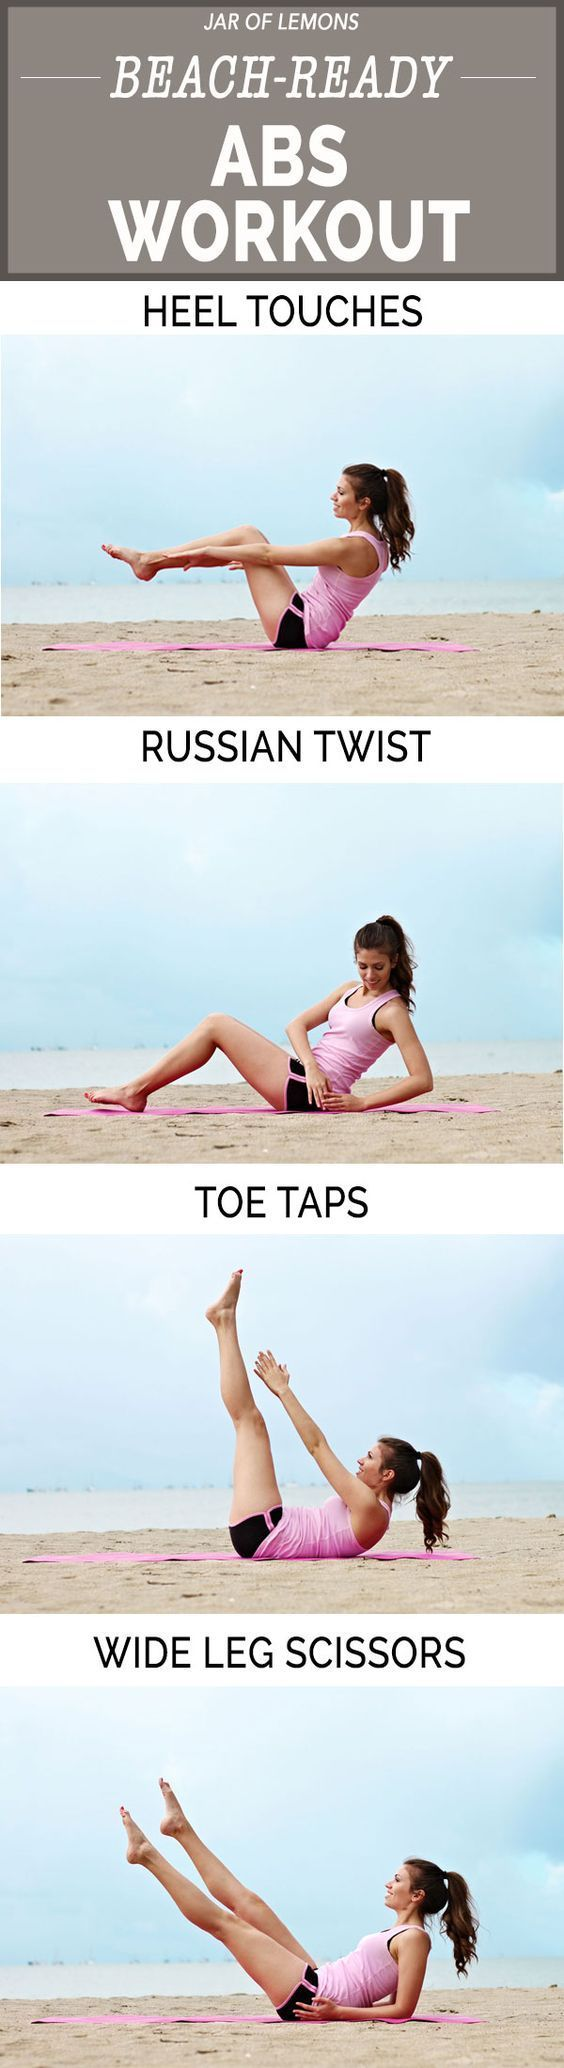 Beach-Ready Abs Workout! Do this workout once a week to get the summer abs you've been looking for!